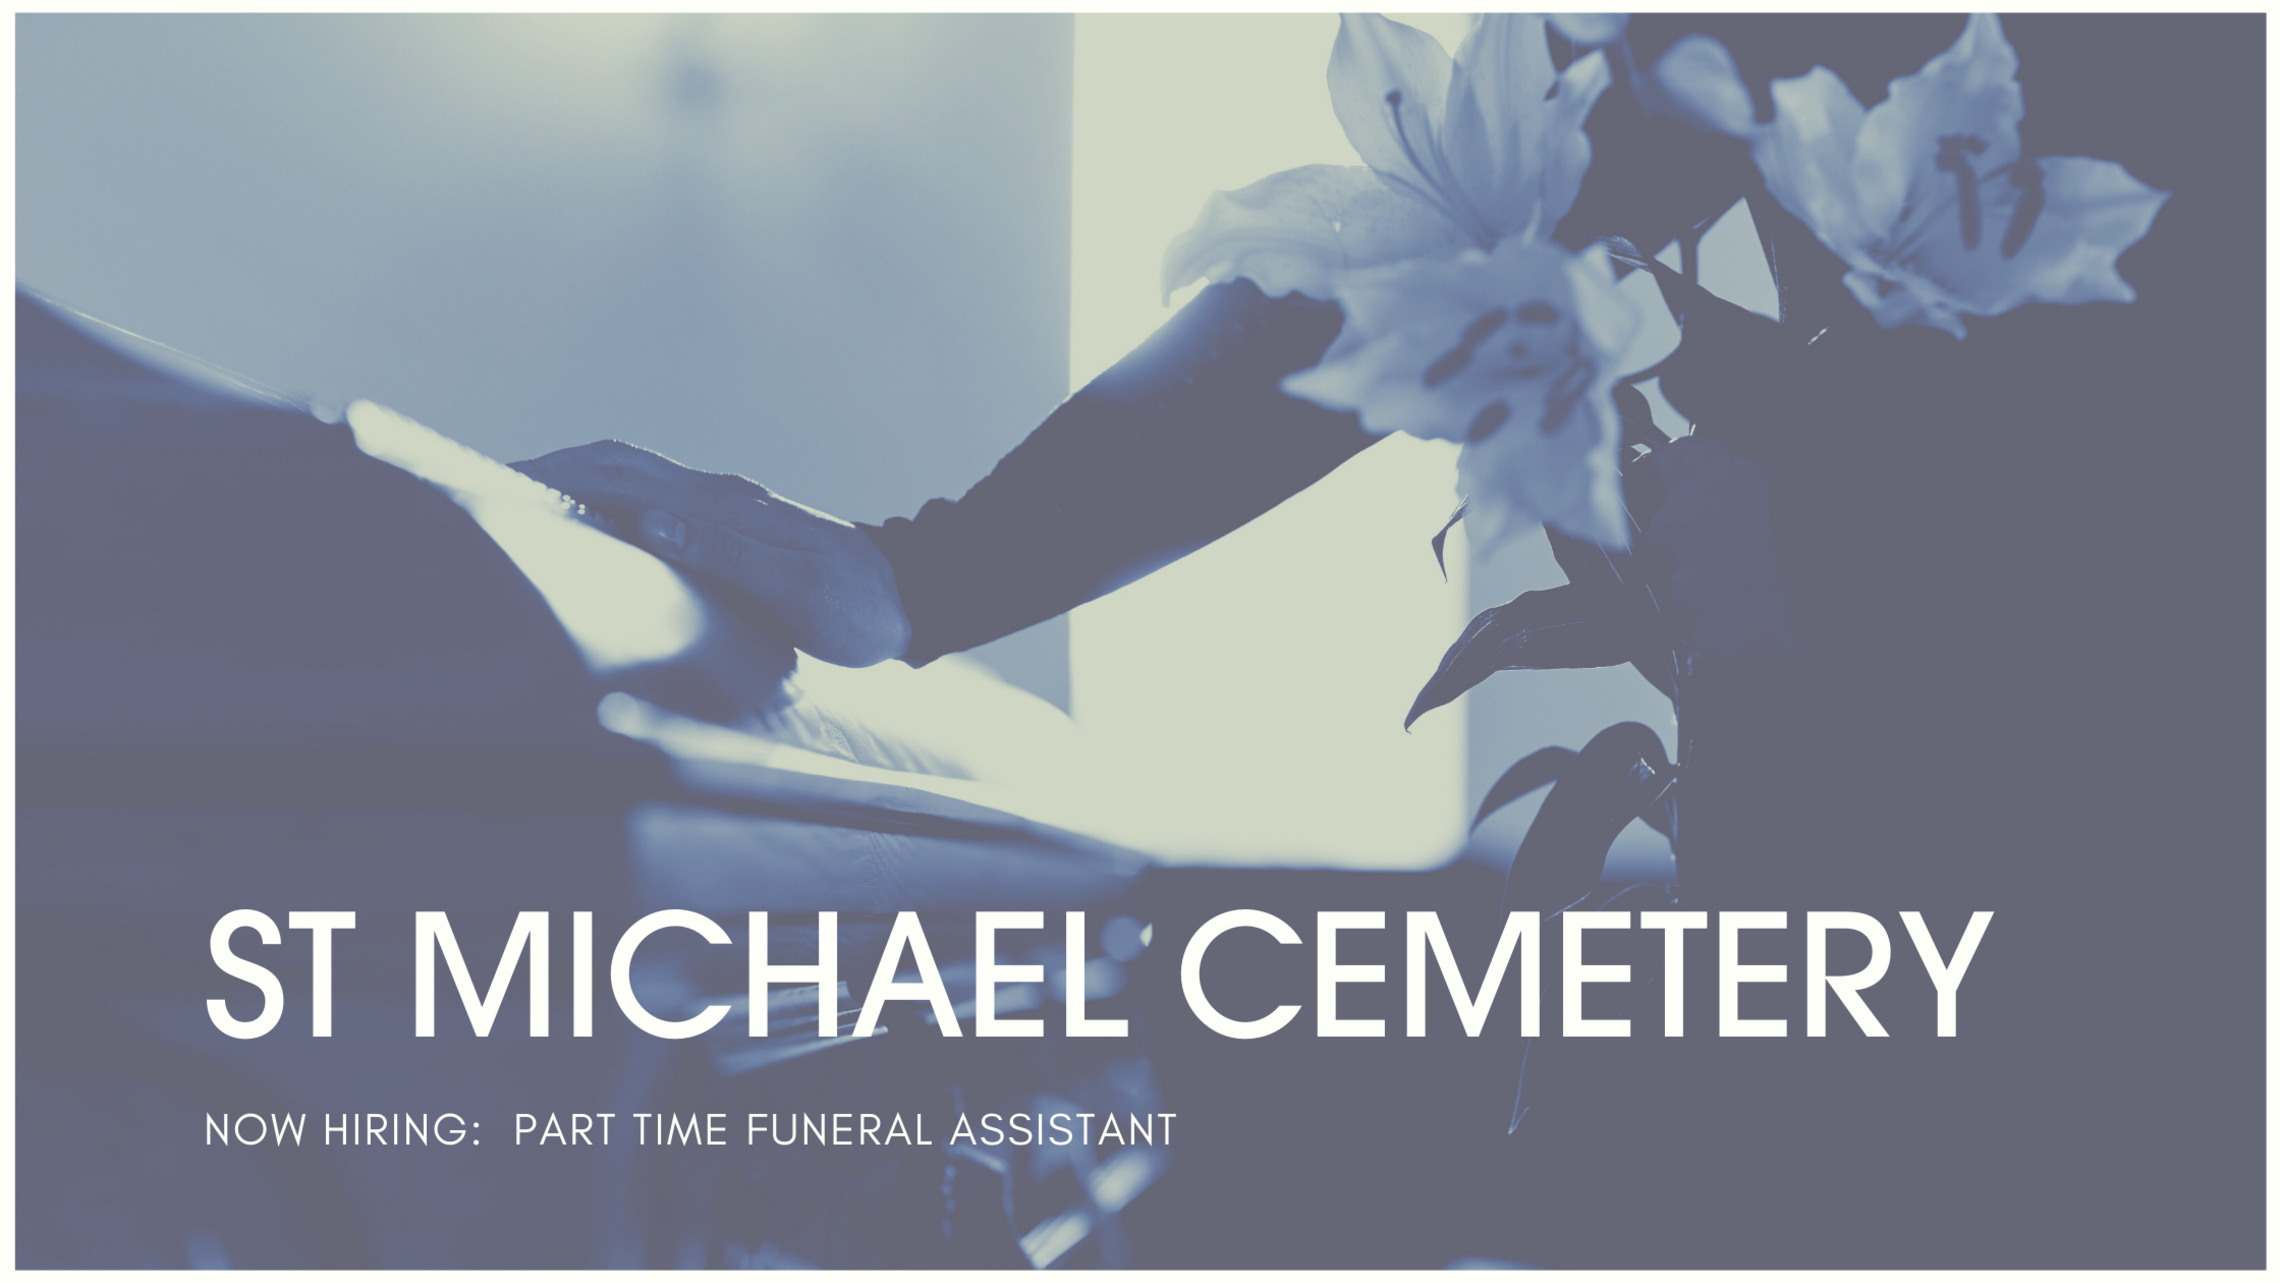 St Michael Cemetery Now Hiring